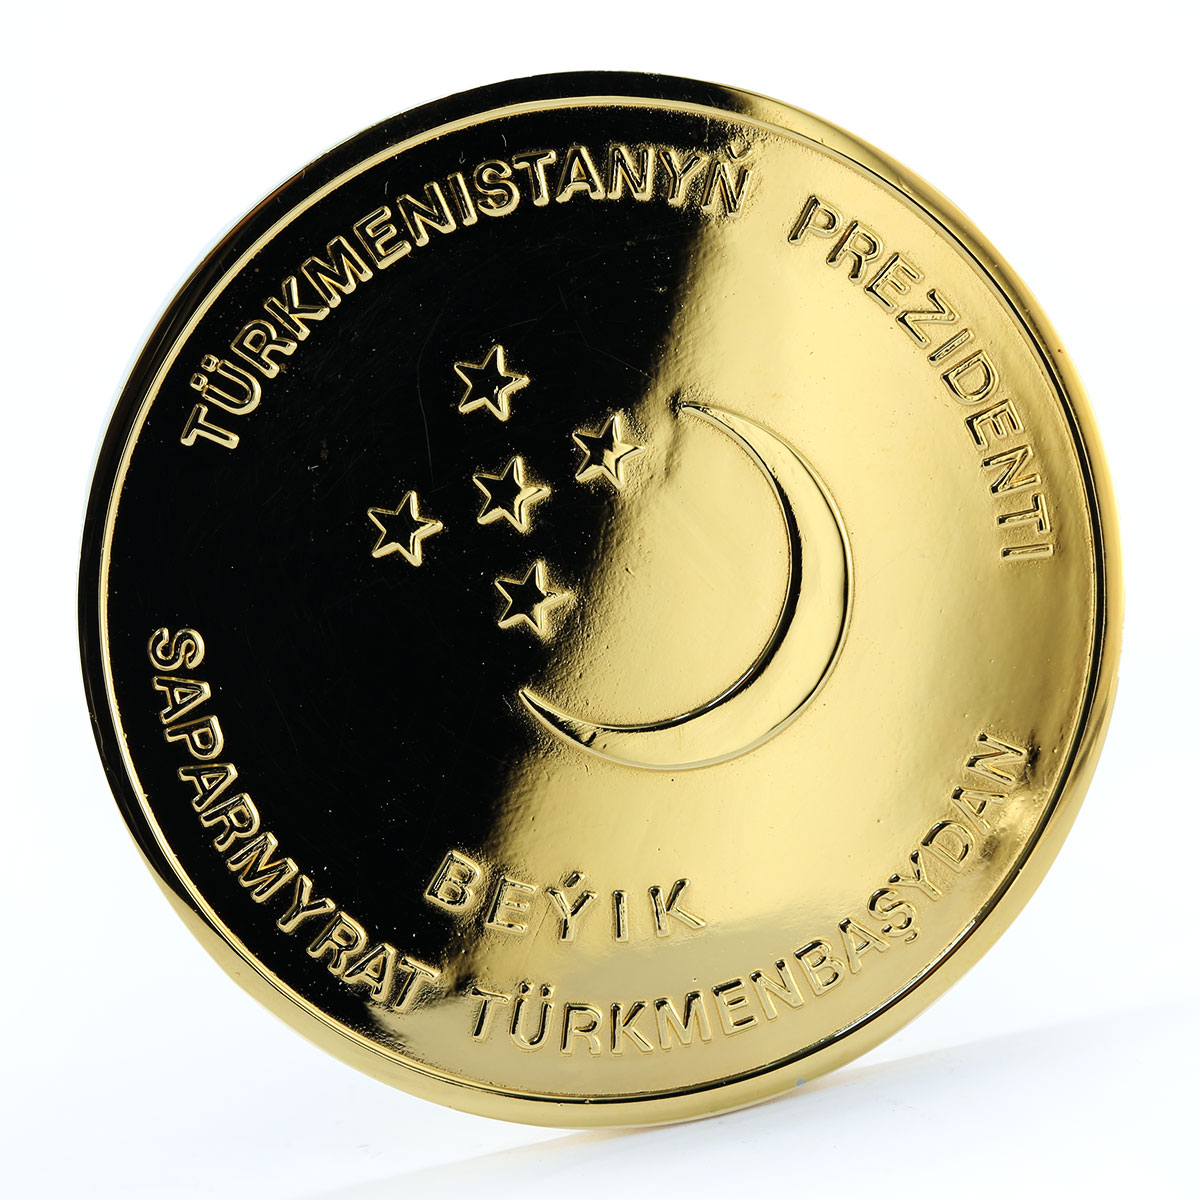 Turkmenistan 10 years of Turkmenistan Independence medal